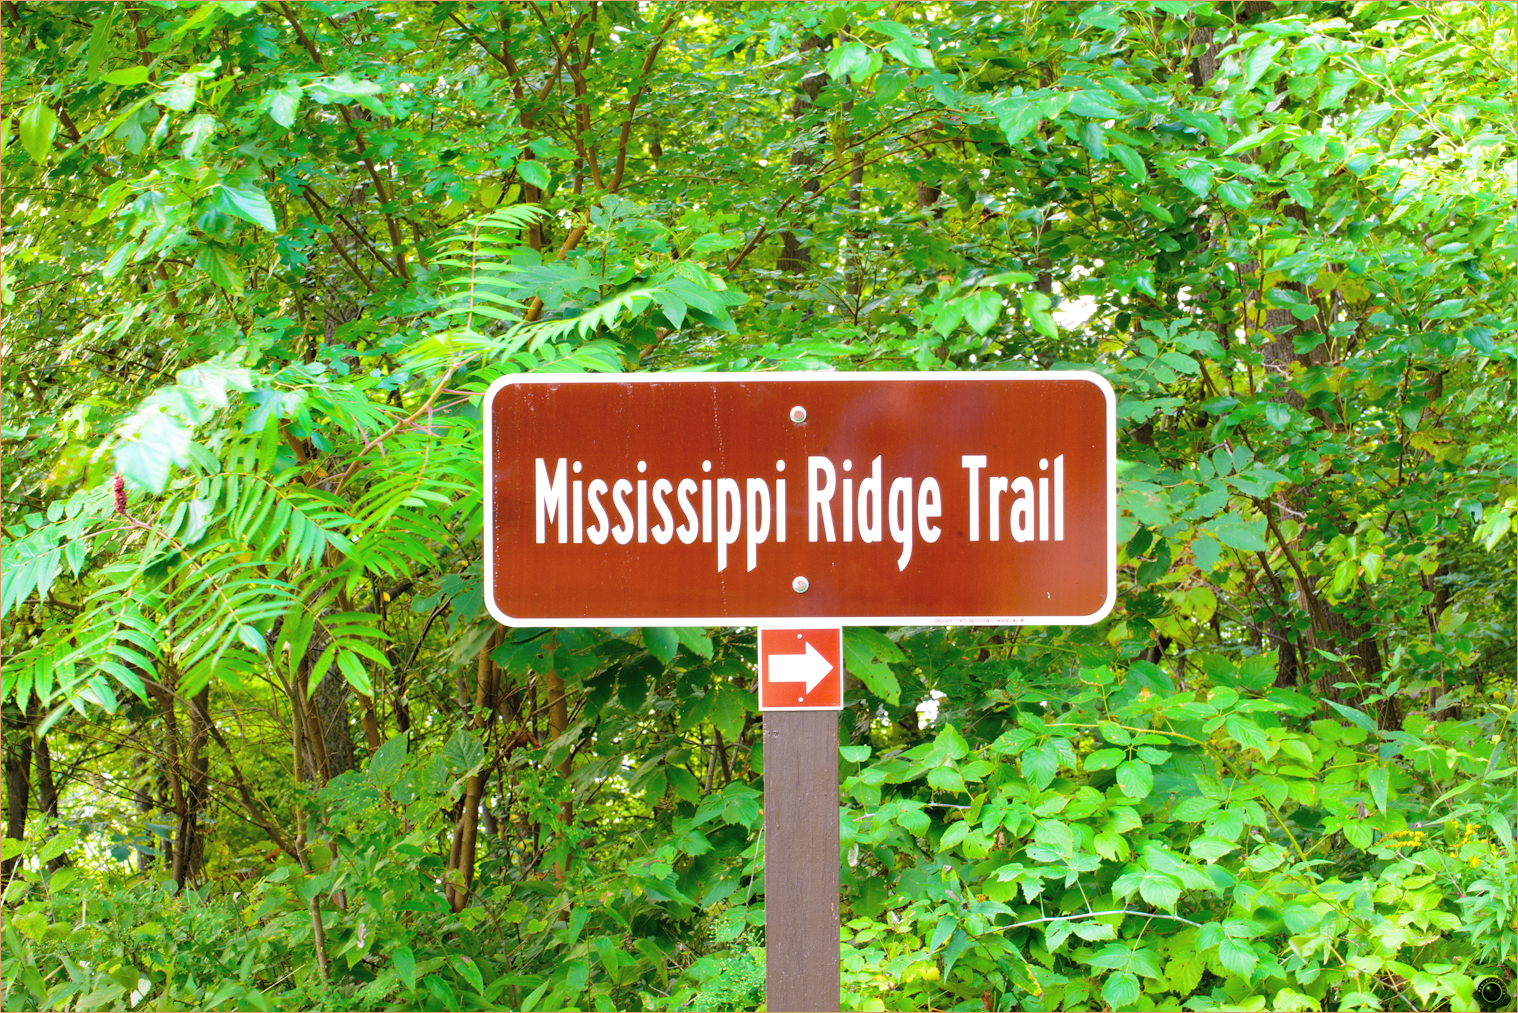 80 Wyalusing State Park Mississippi Ridge Trail Sign